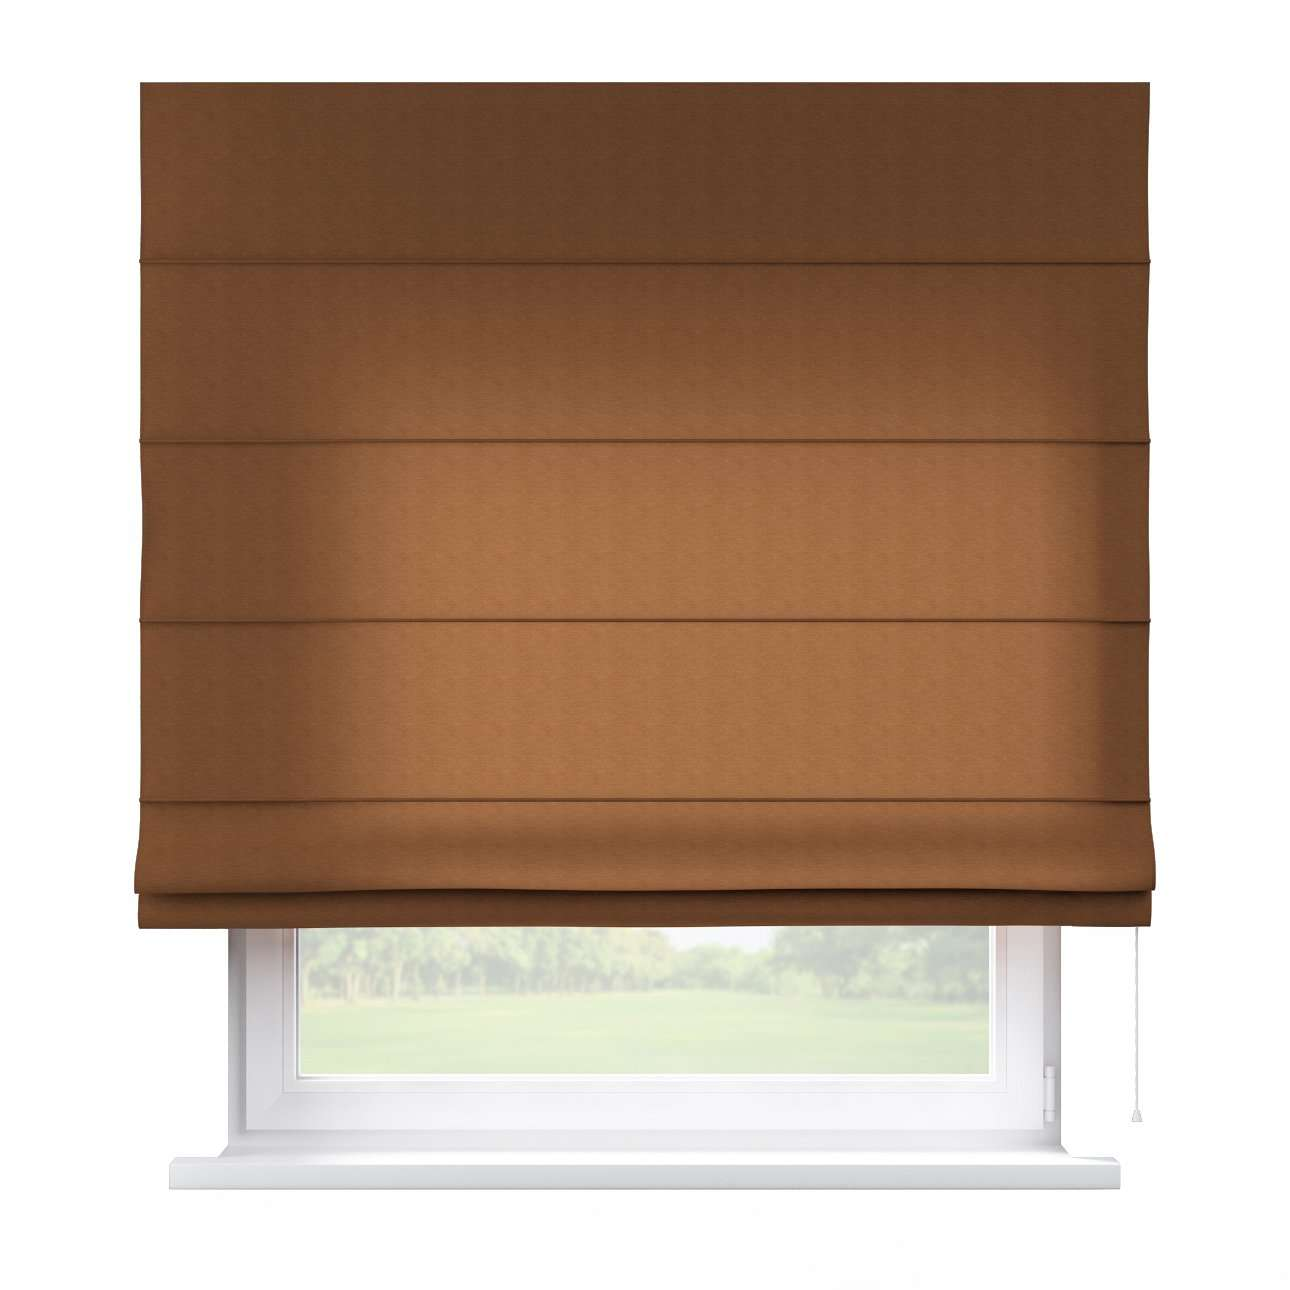 Capri roman blind 80 x 170 cm (31.5 x 67 inch) in collection Jupiter, fabric: 127-88